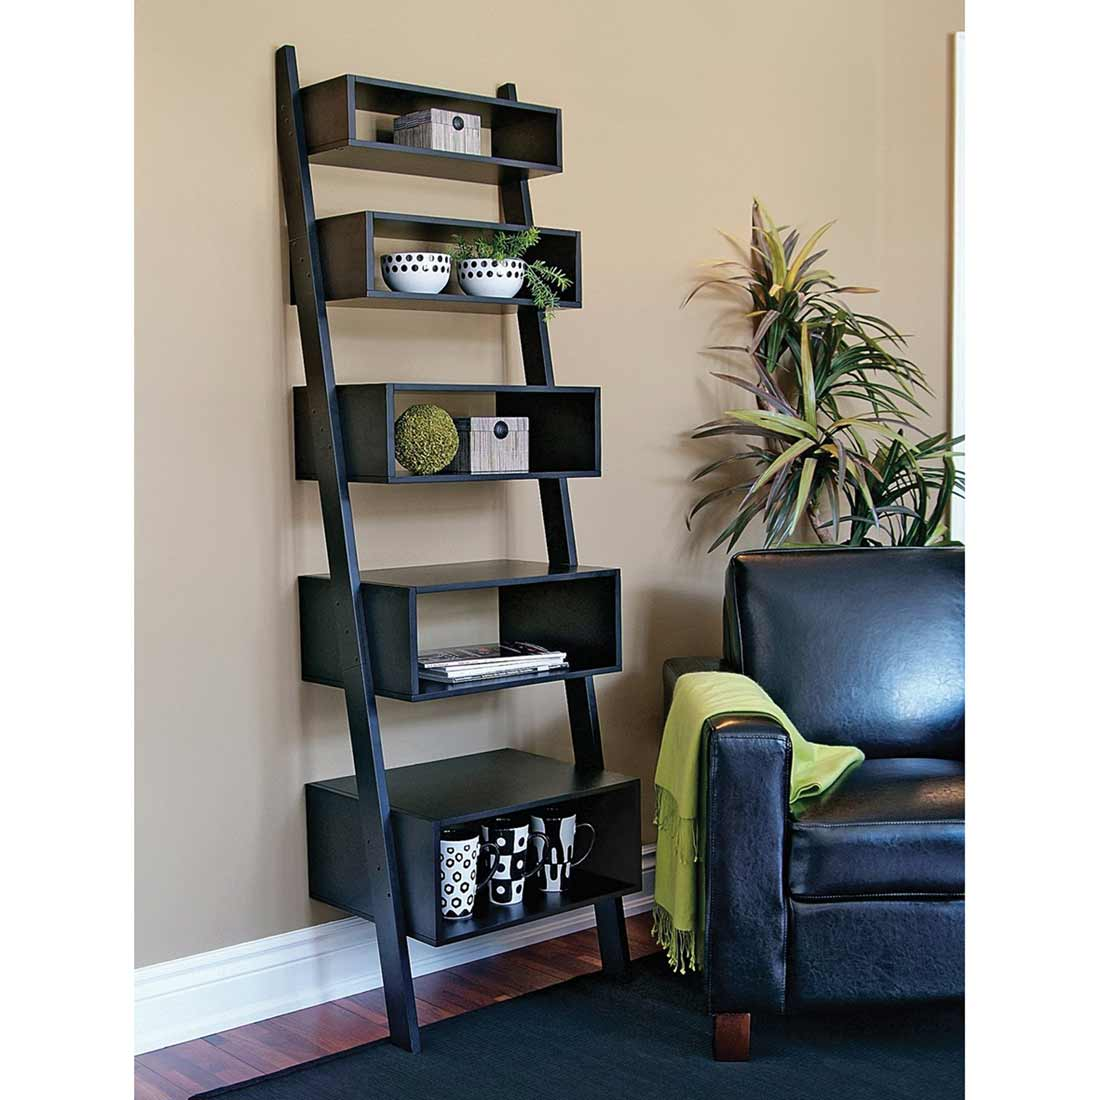 Linea 5 tier black leaning wall shelves orion series